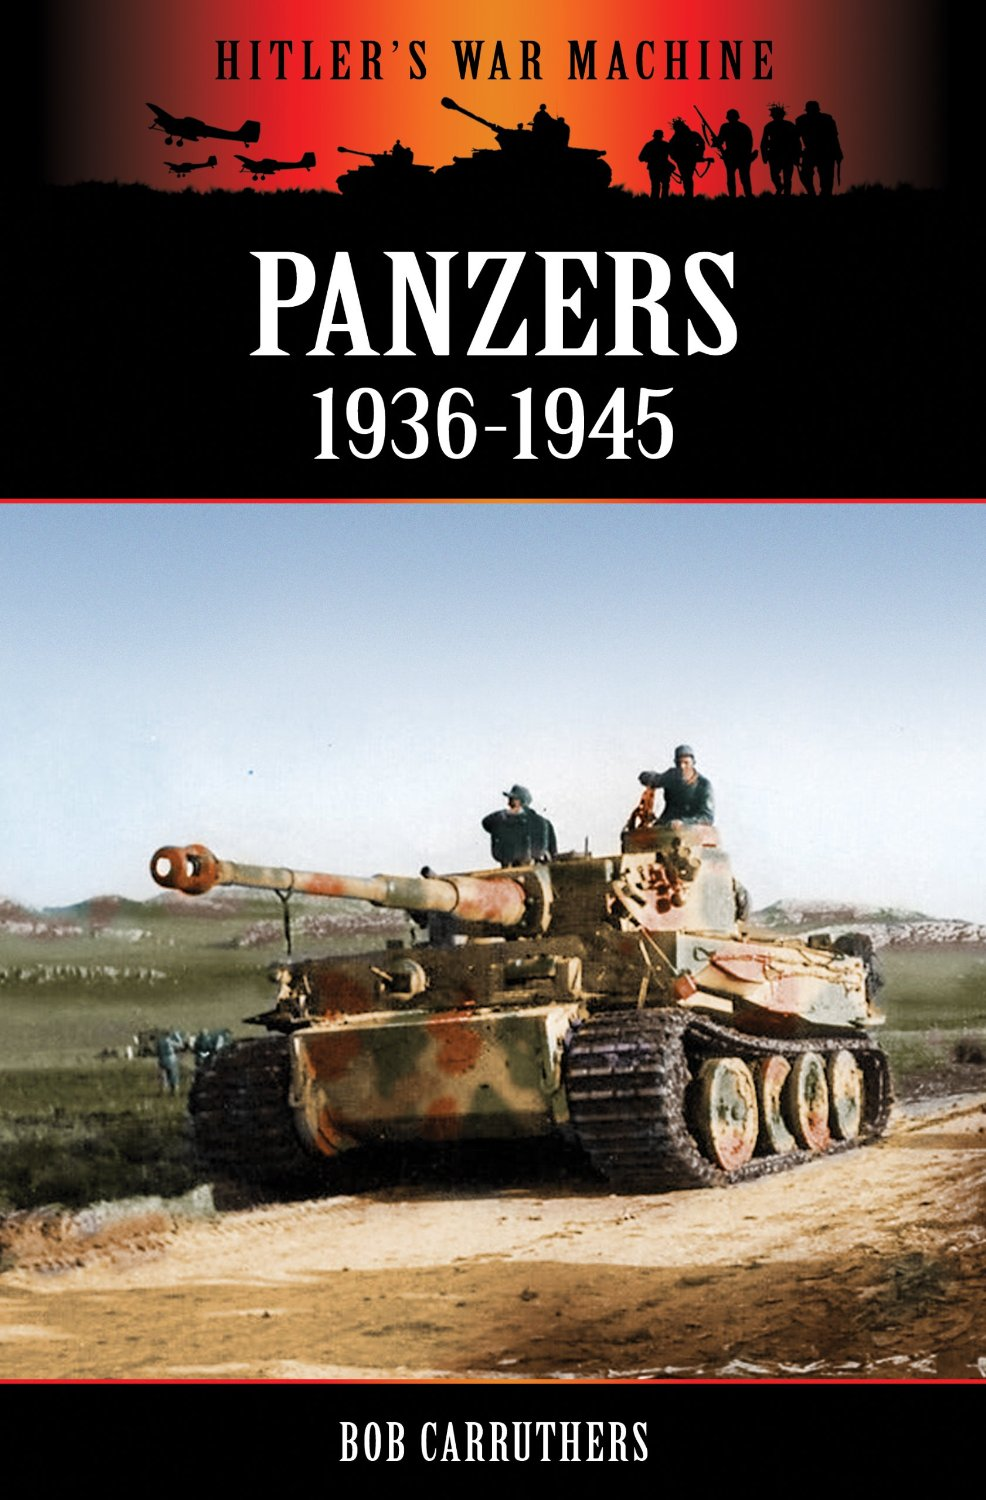 Panzers 1936-1945 (Hitler's War Machine) free download